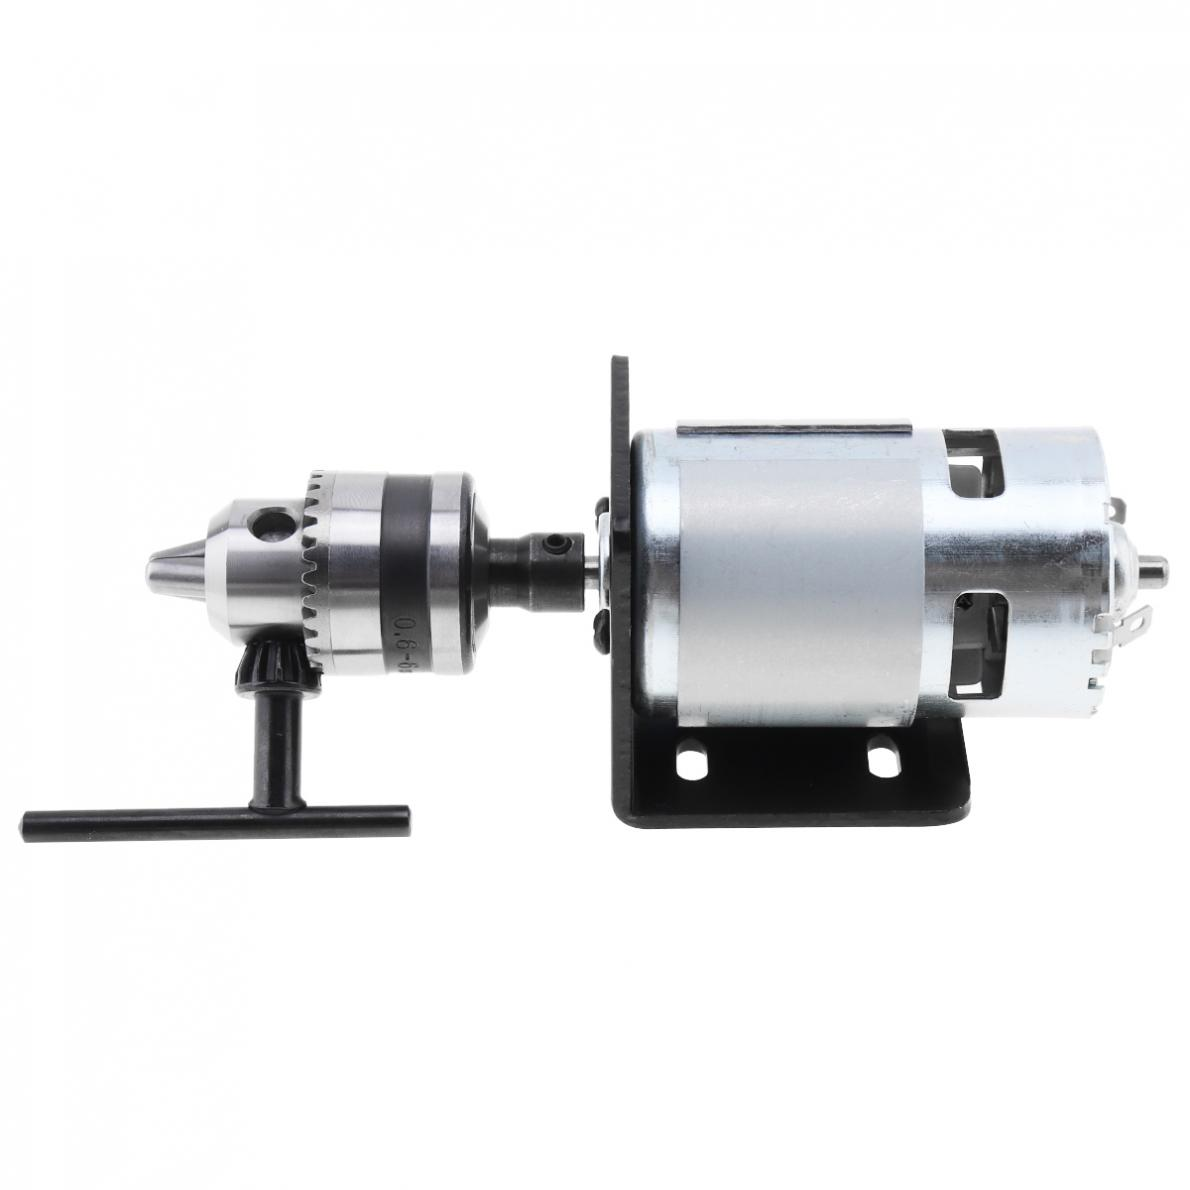 1set 12-24V 775 Lathe Press Motor with B10 Drill Chuck and Mounting Bracket vangel 3 2mm b10 used for motor shaft diameter 3 2mm miniature drill chuck 0 6 6mm b10 for drill press electric drill